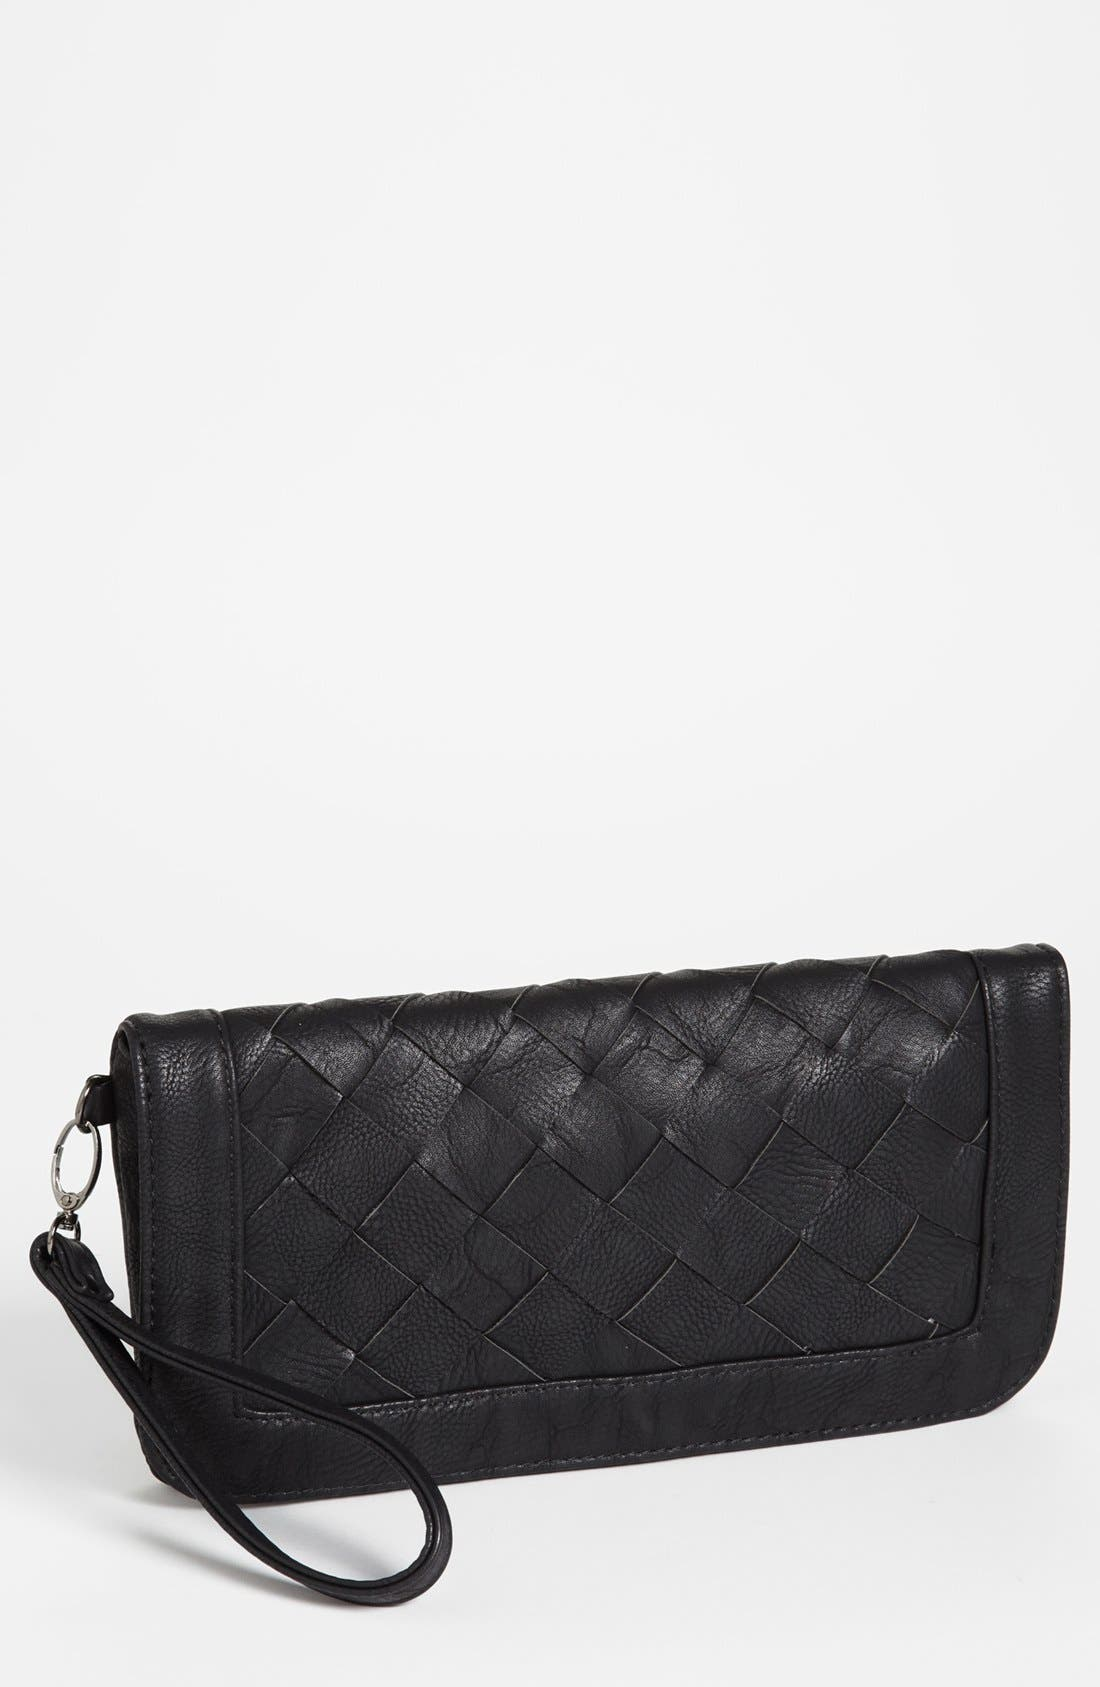 Main Image - Natasha Couture Woven Faux Leather Clutch